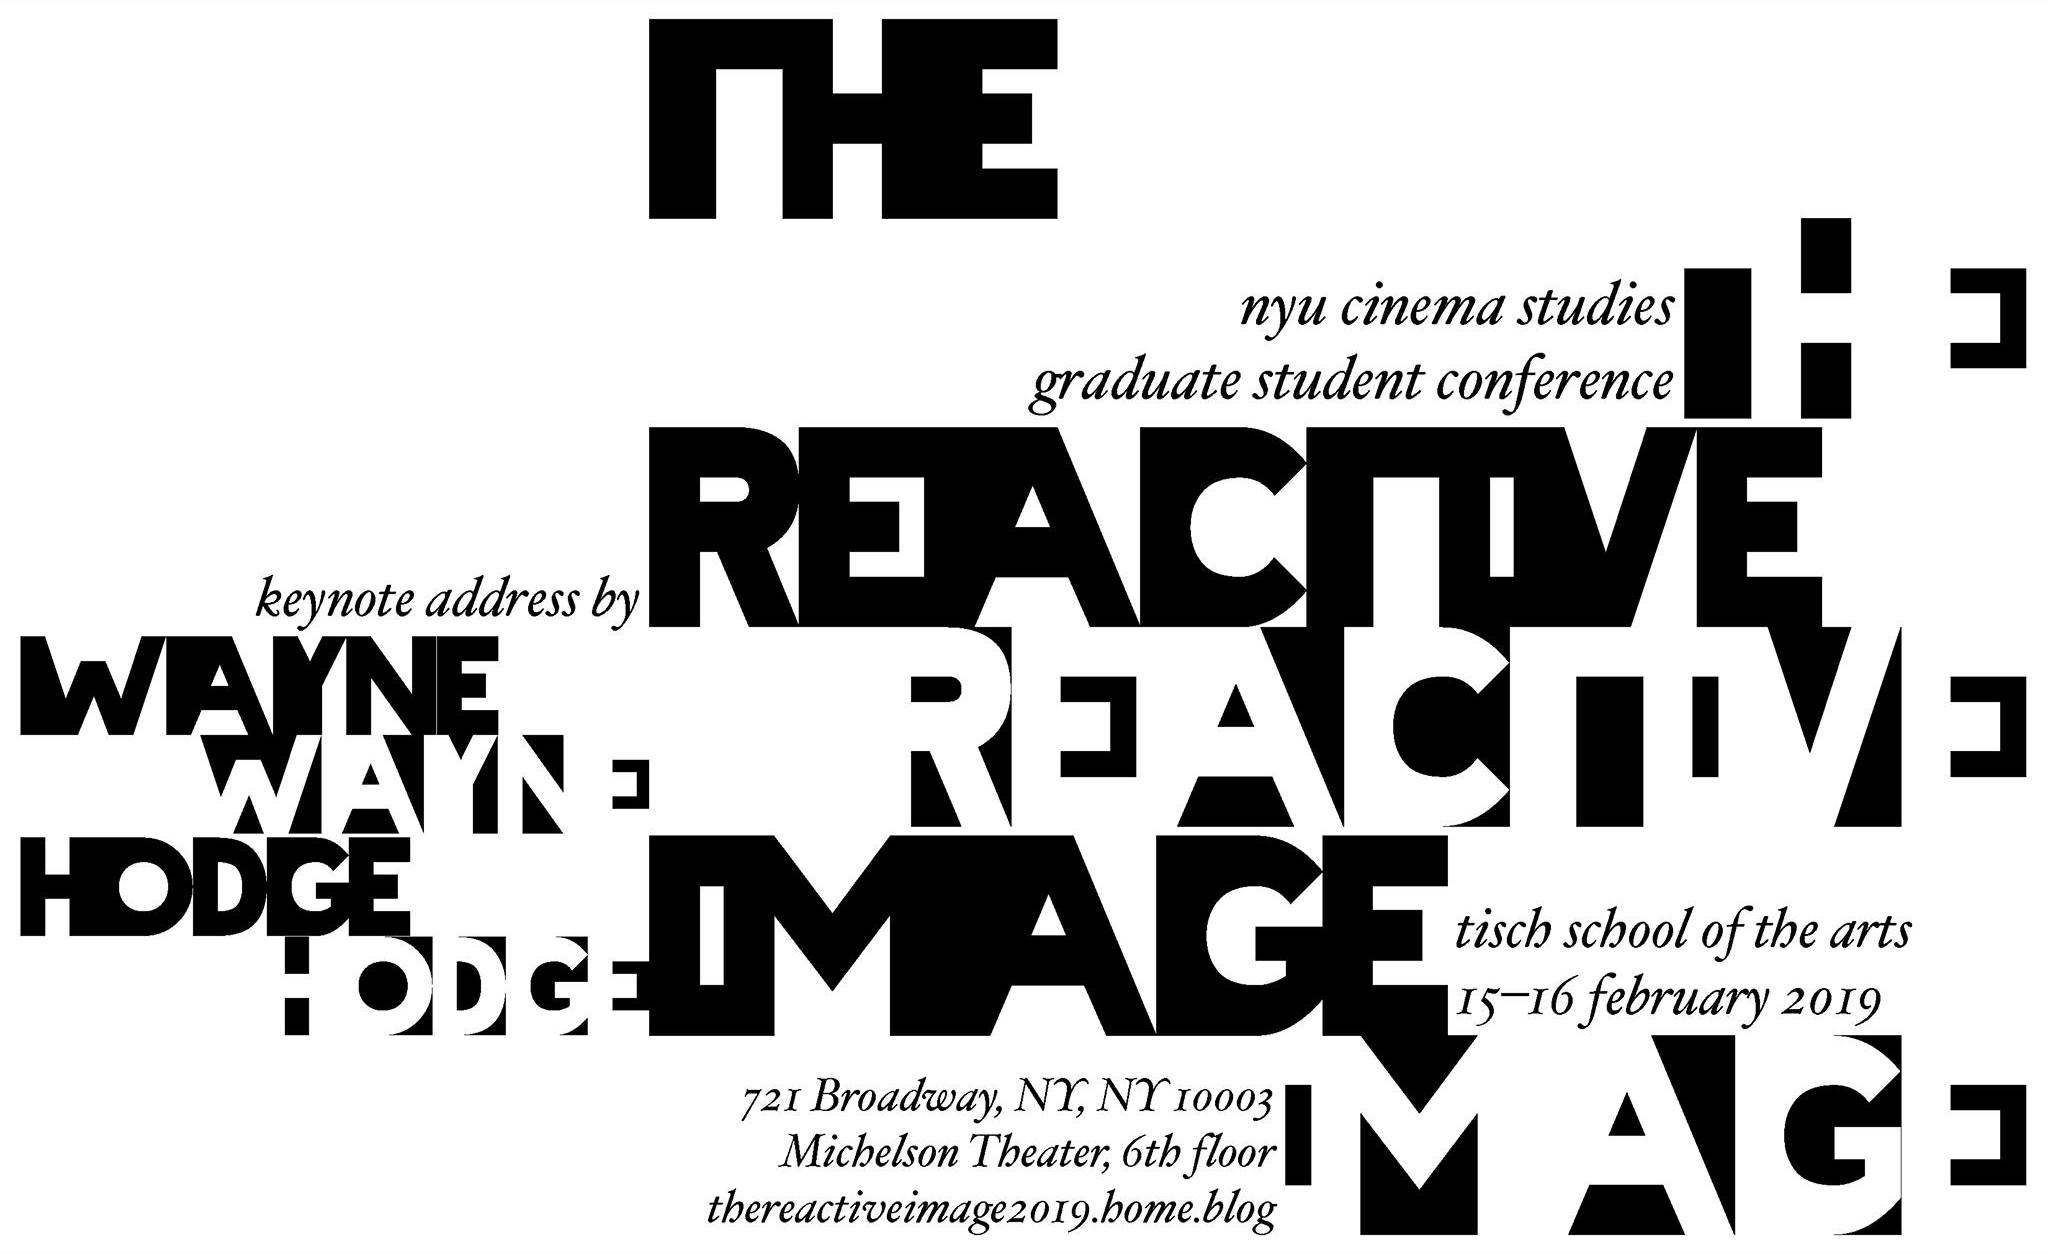 Re:active Image NYU Conference 15-16 february 2019.jpg